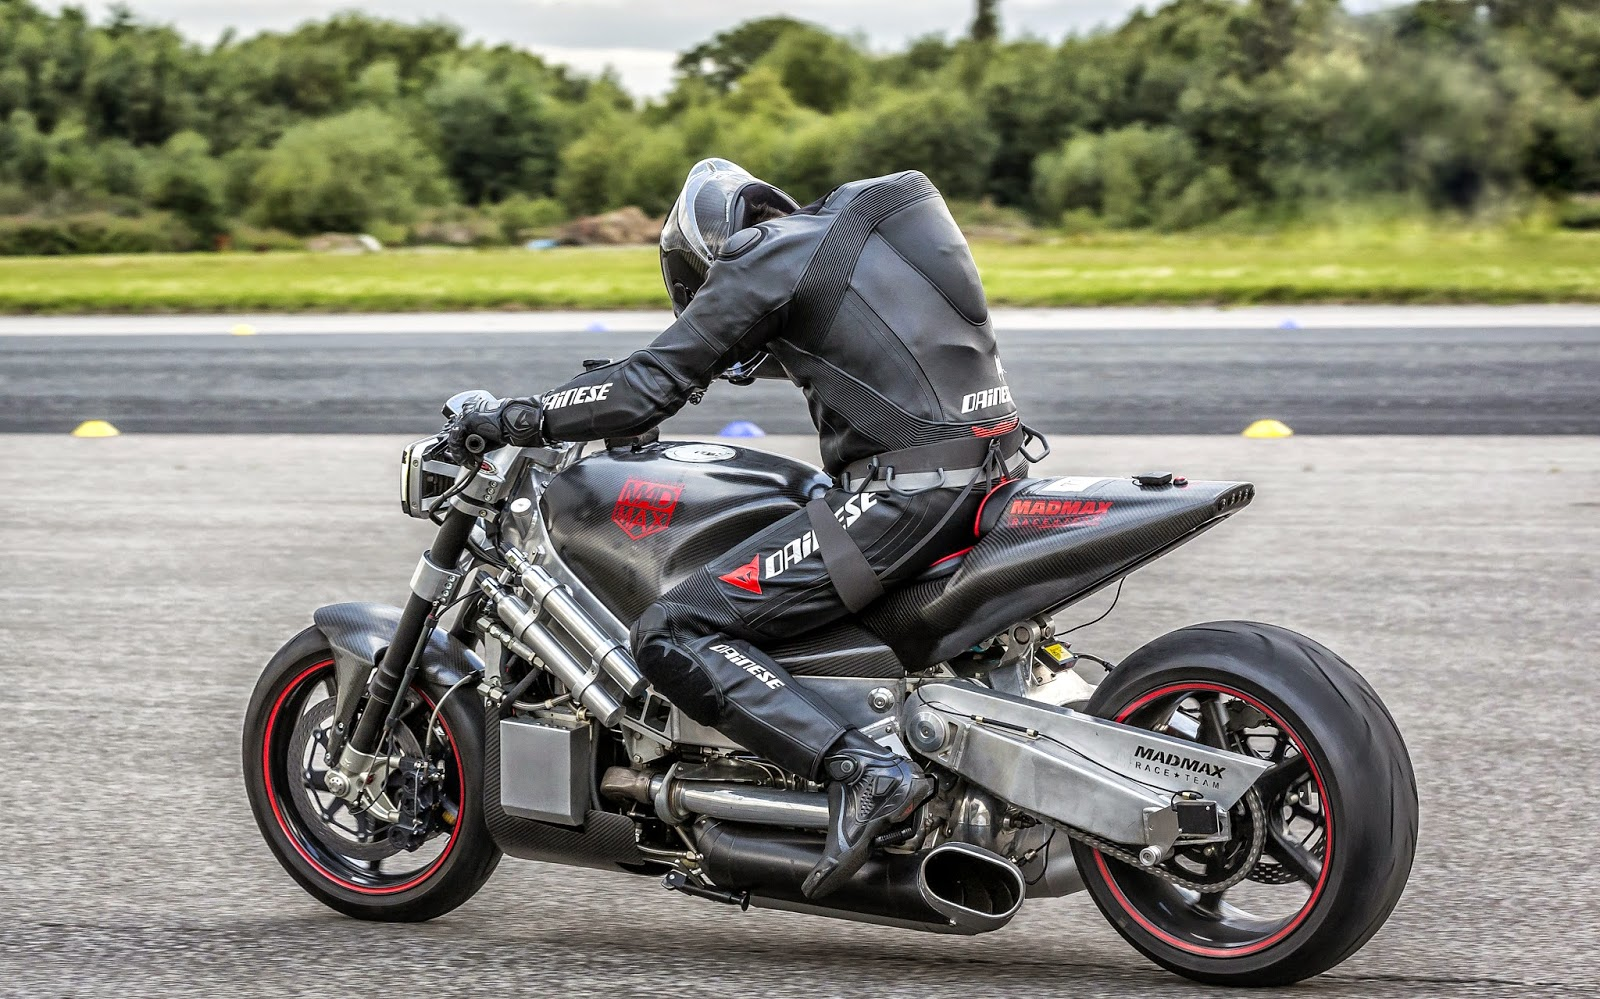 motorcycle turbine engine with World Fastest Naked on Mtt Turbine Streetfighter Superbike Photo Gallery furthermore Rolls Jet Engine Diagram together with 2014 Cvo Breakout Harley S New Pride Photo Gallery 68578 furthermore Mtt Turbine Streetfighter Superbike Photo Gallery besides 1711479.